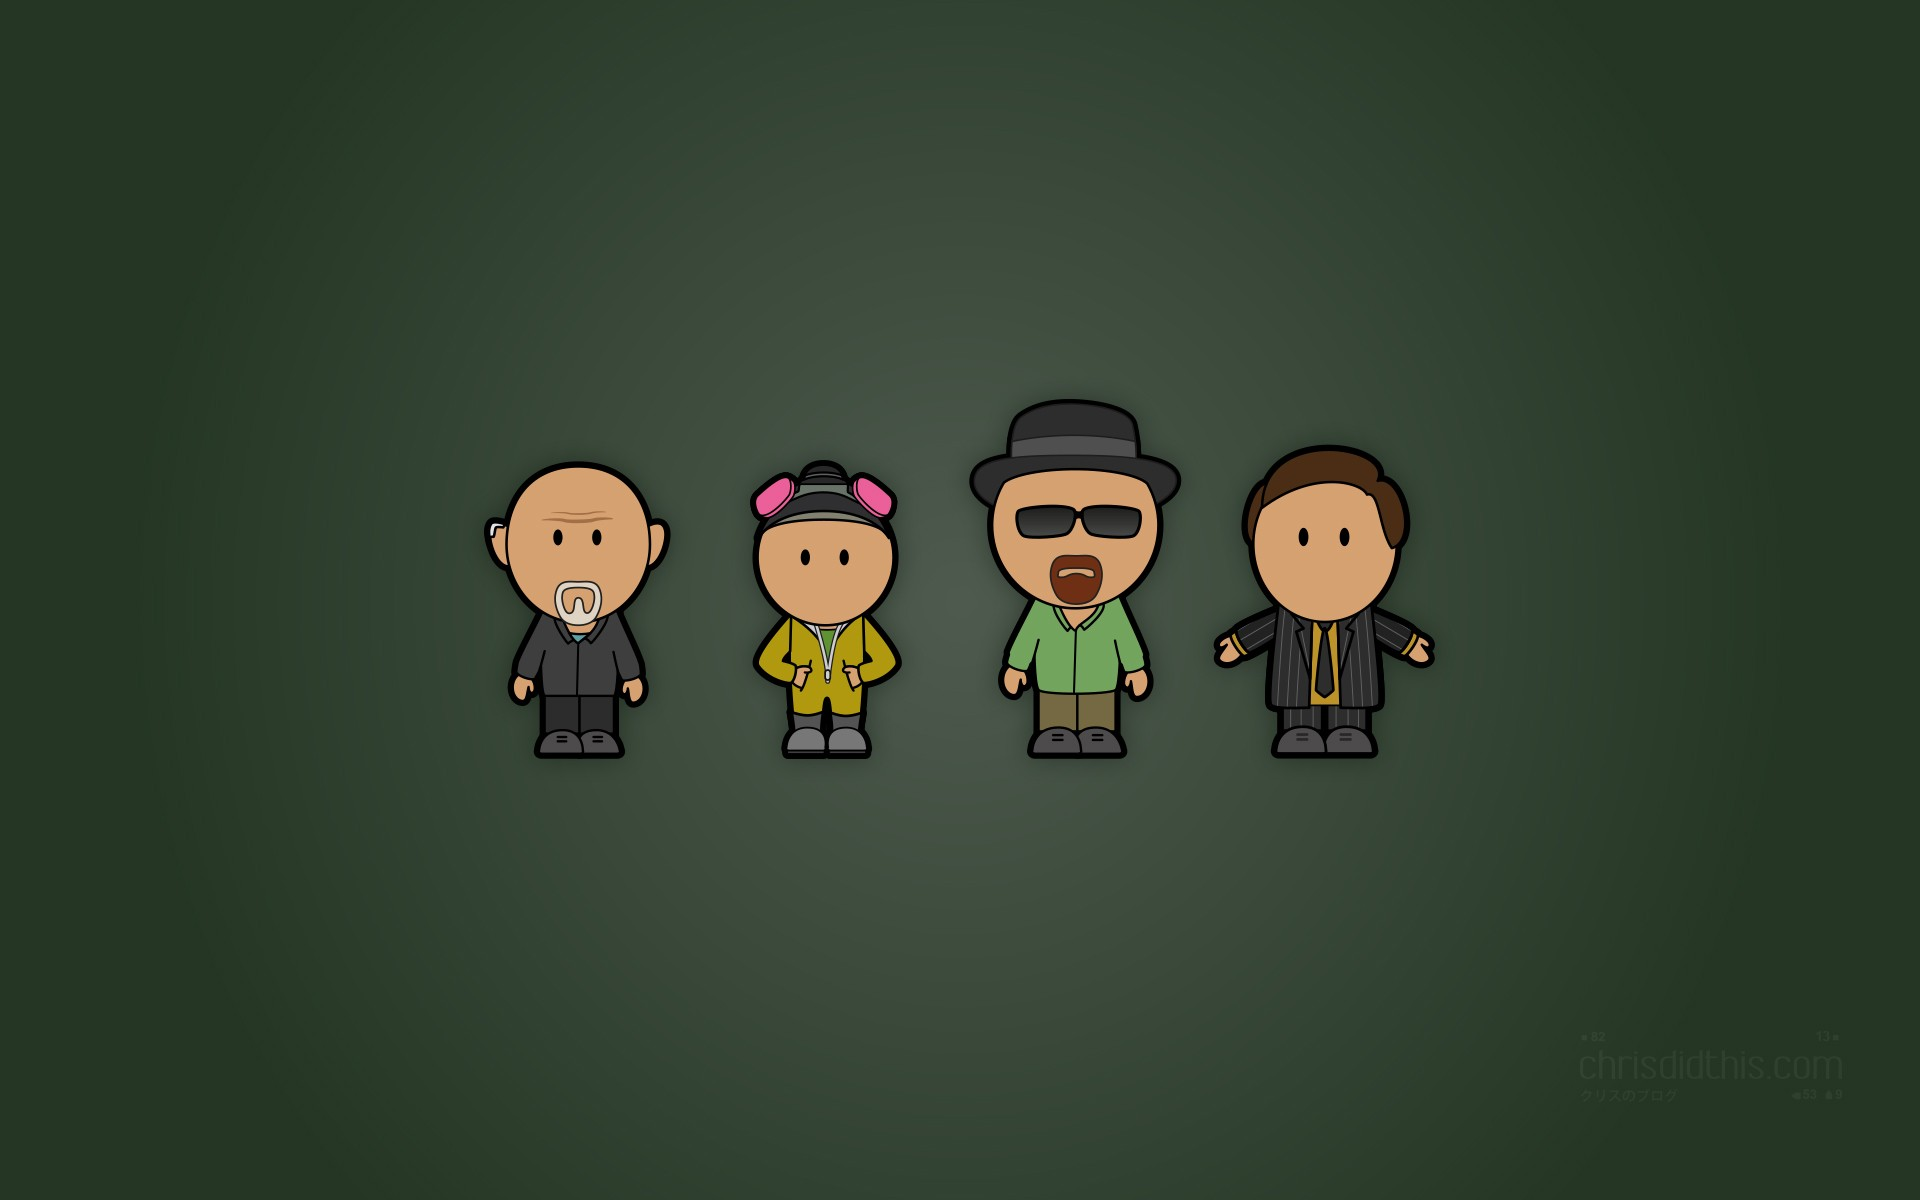 breaking-bad-wallpaper-10 & Breaking Bad Wallpaper \u2013 Let\u0027s Talk About